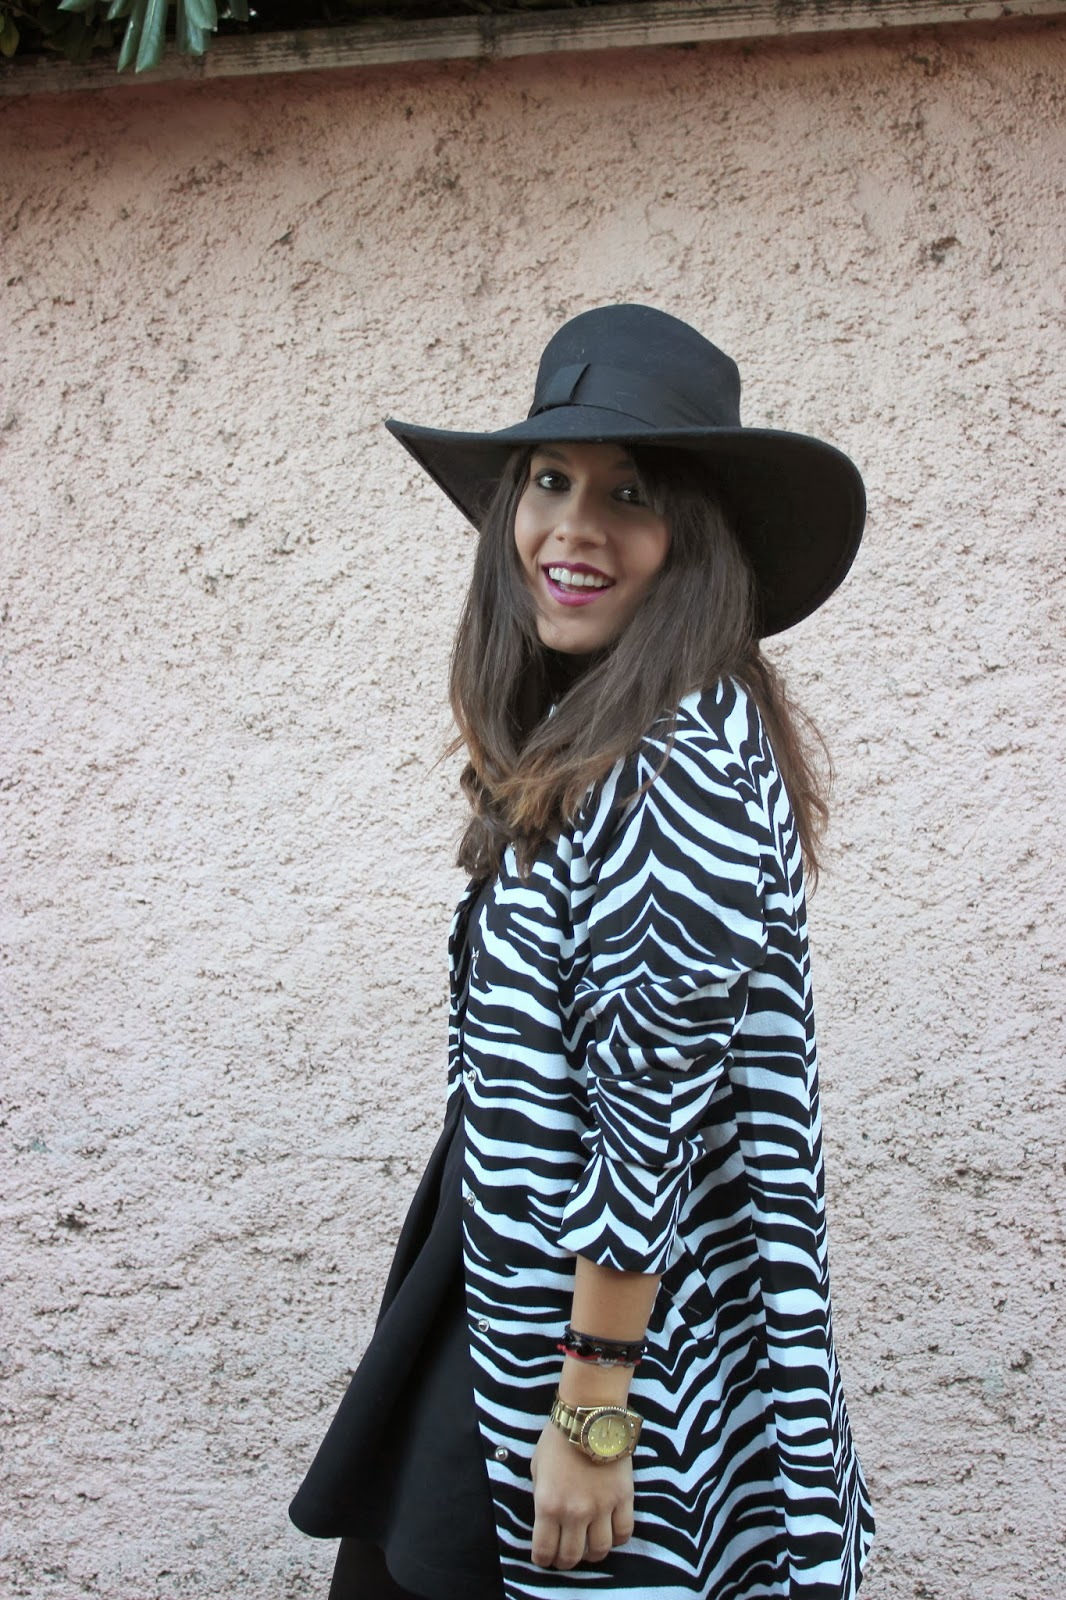 fashion blogger con abrigo zebra y botas apache customizadas